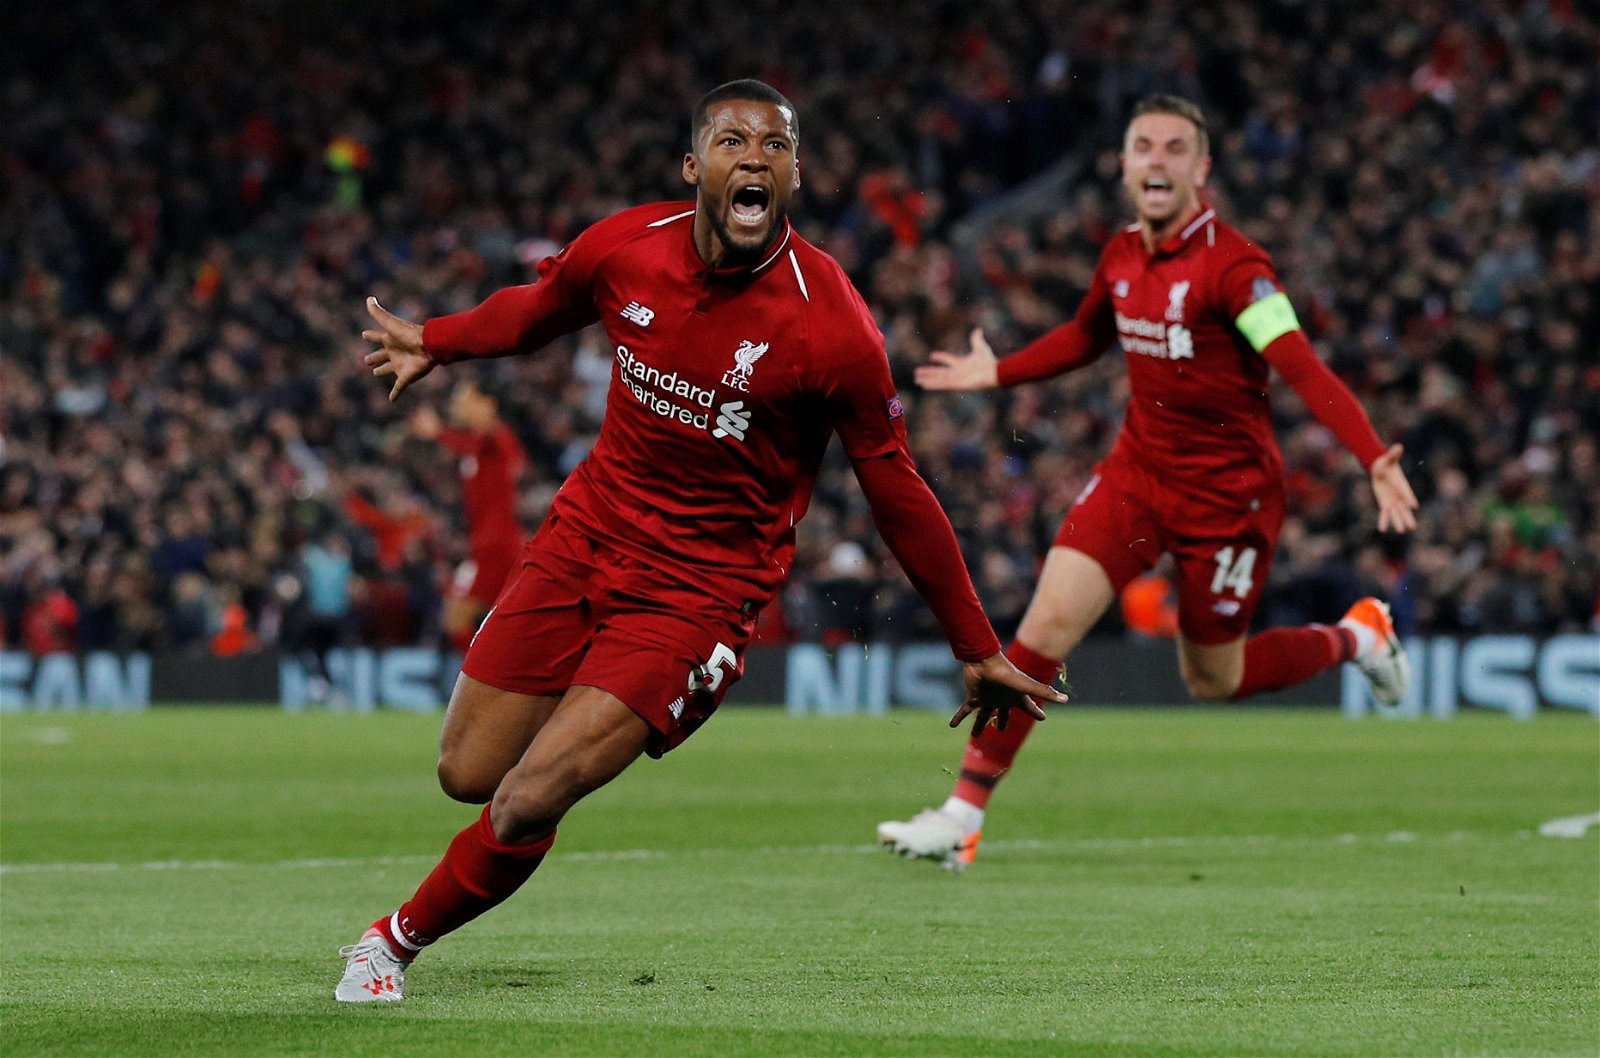 gini - So tough: This could be Klopp's biggest selection dilemma for Champions League final - opinion